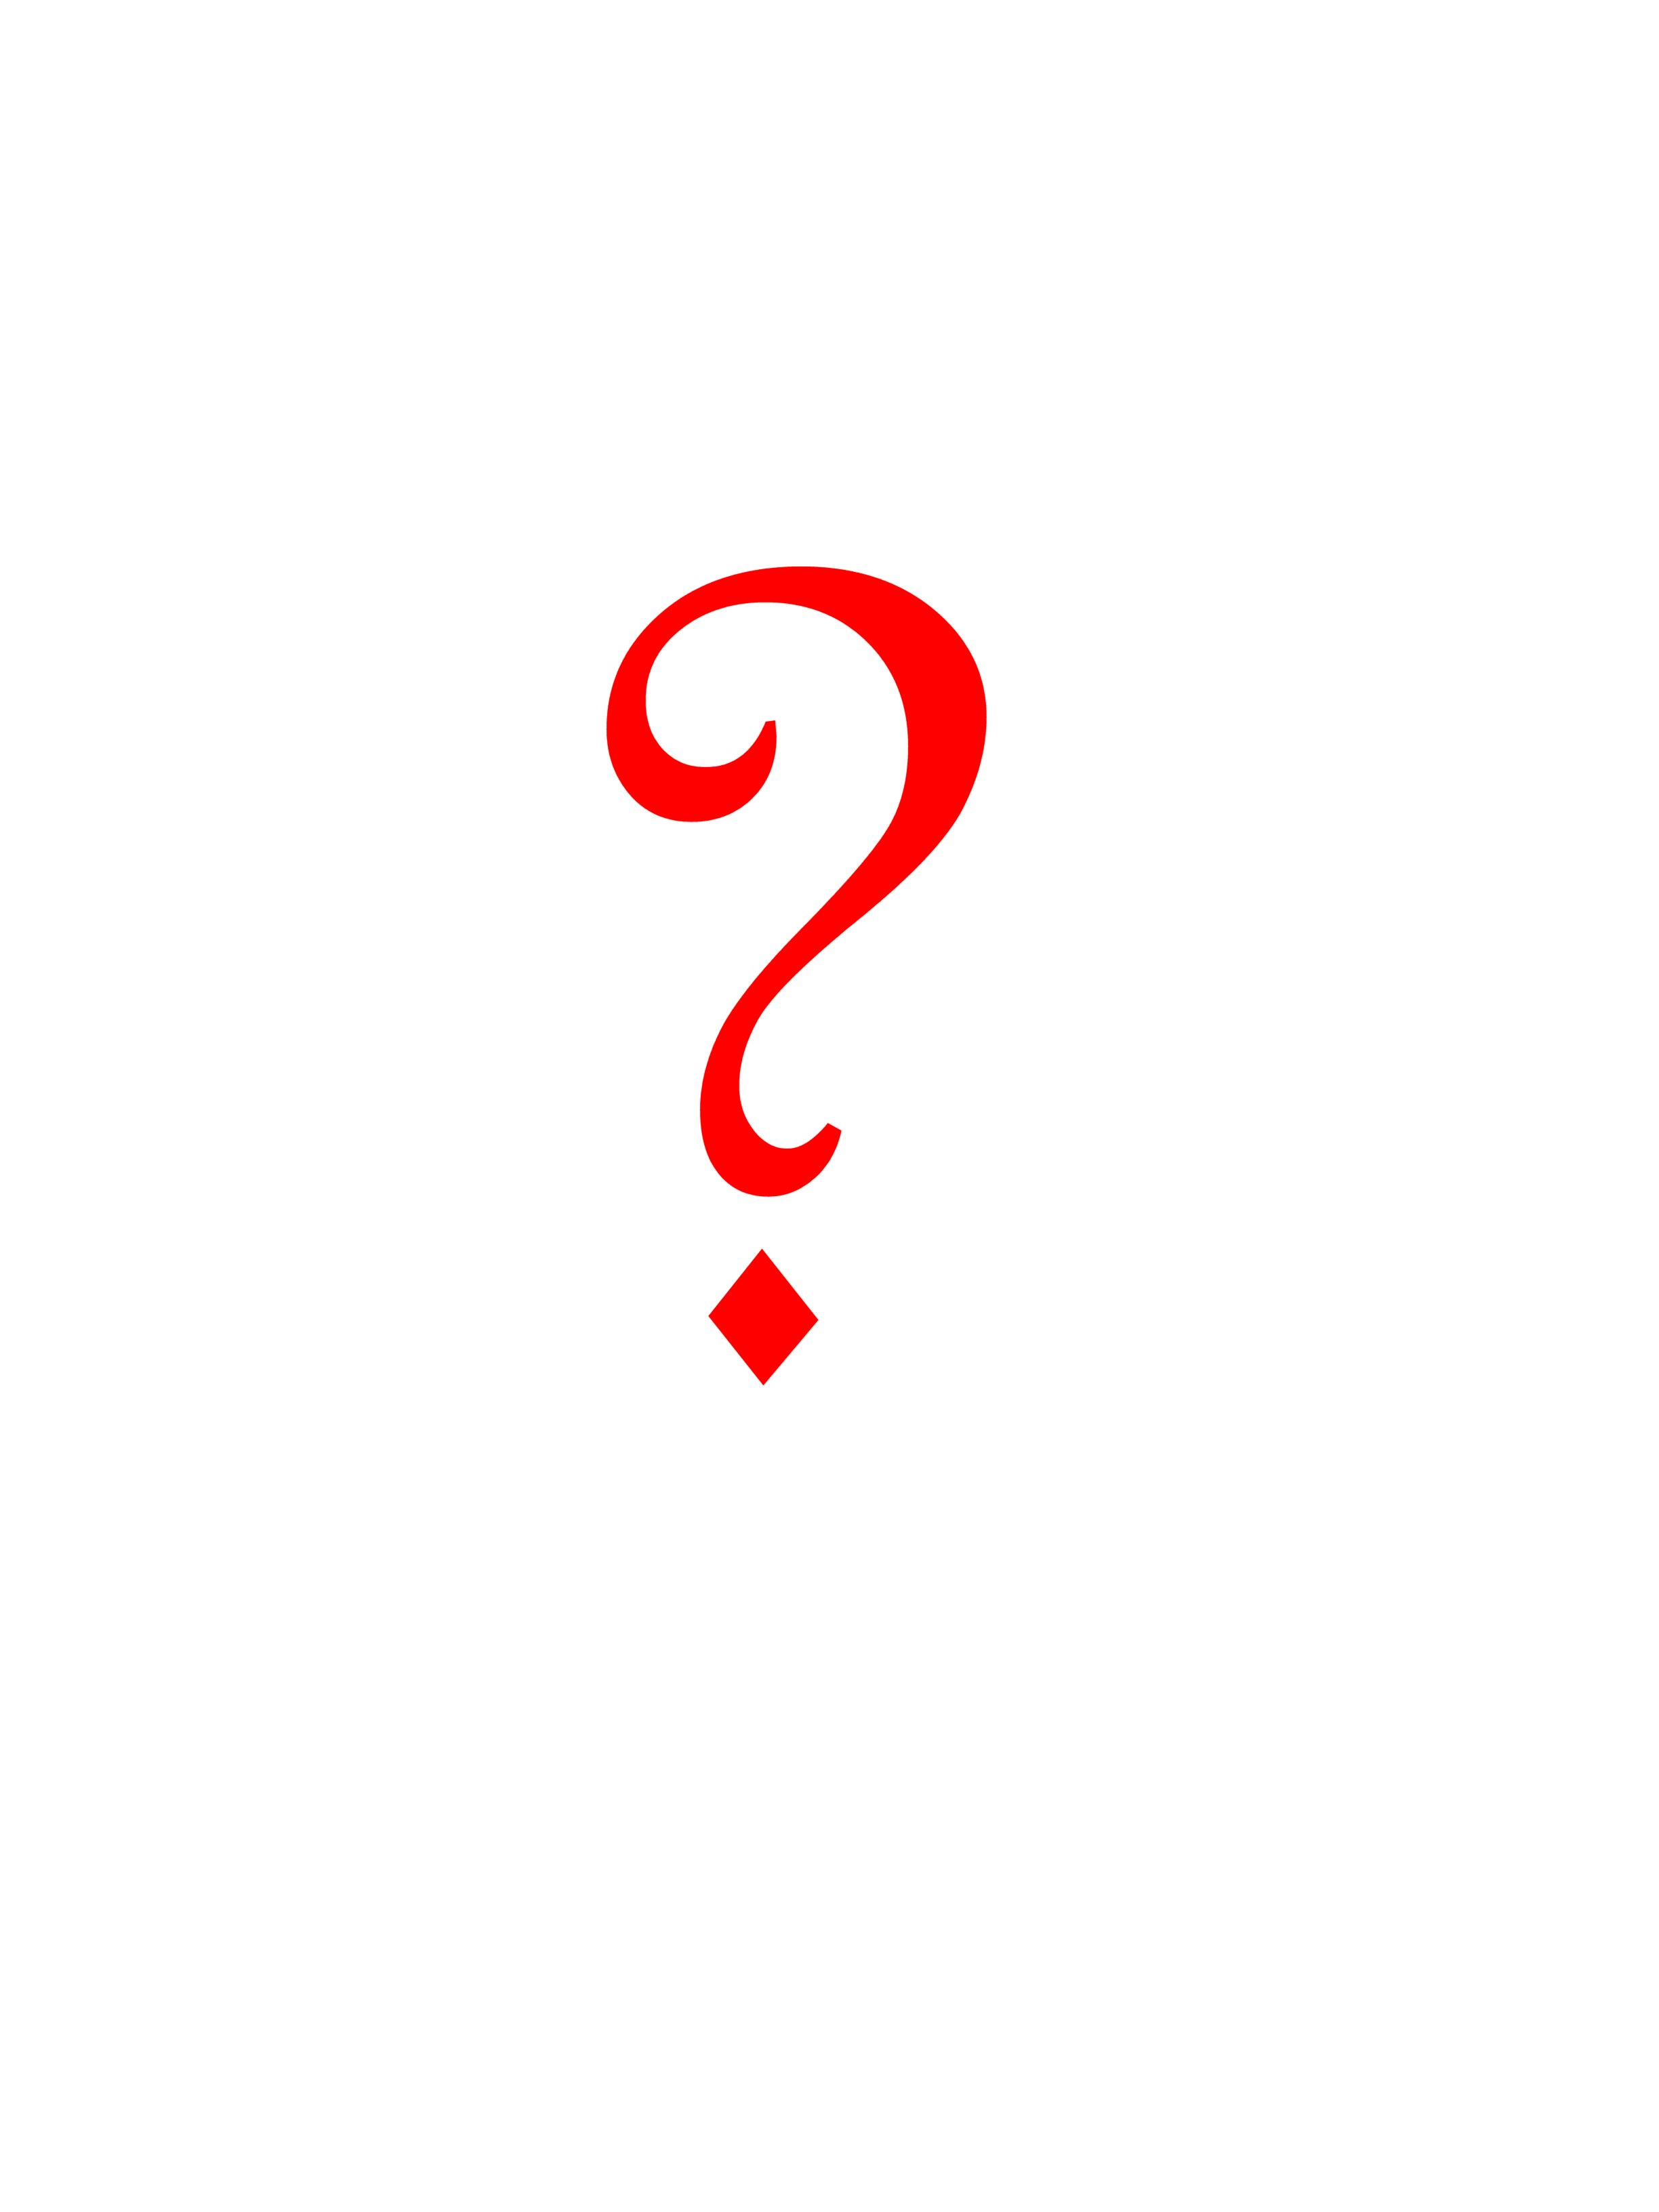 New Ring Comming soon